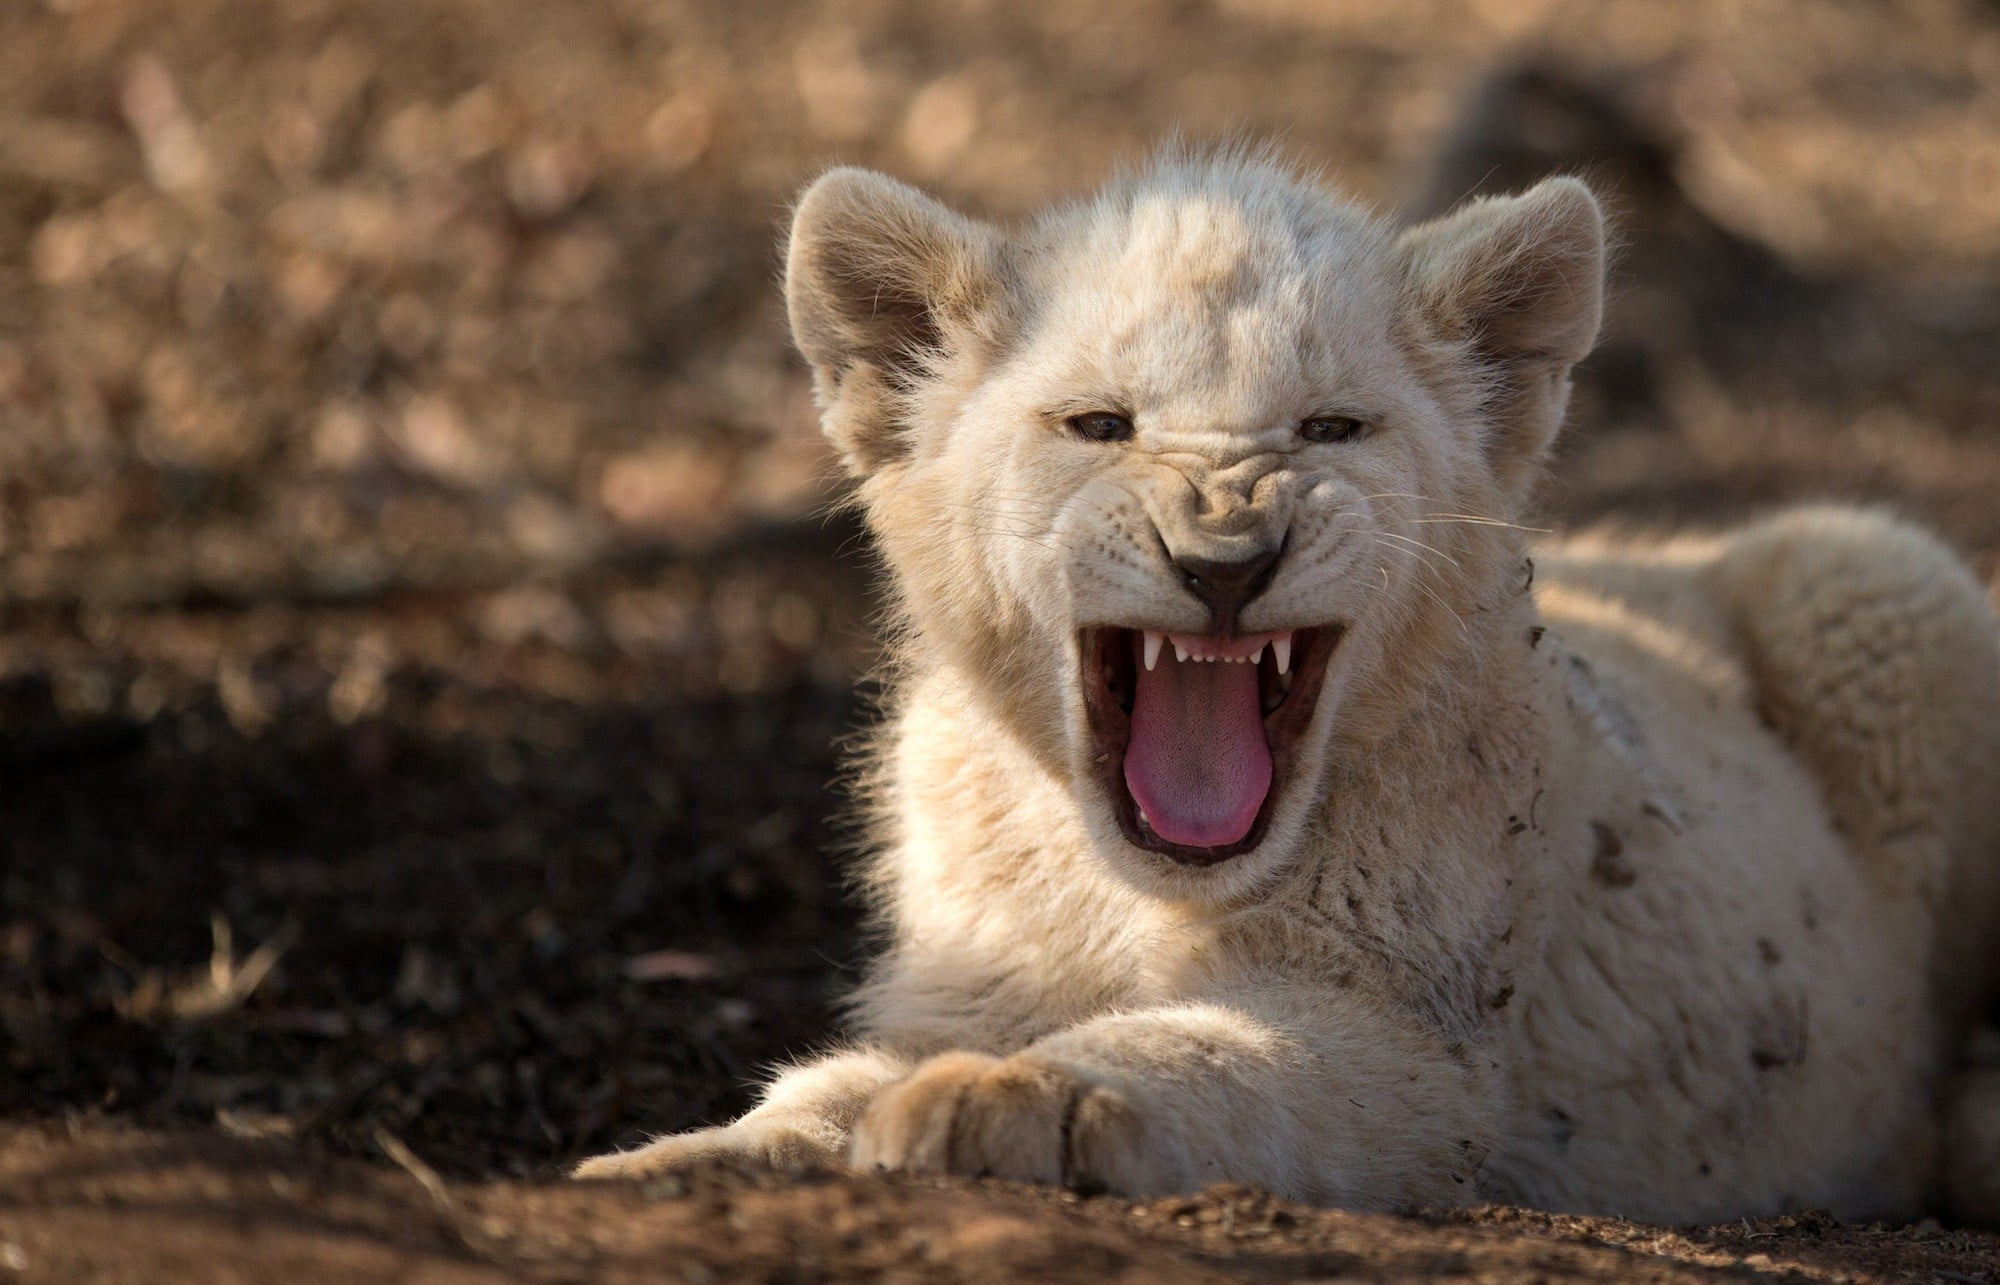 Pictures Of White Lions Roaring - impremedia.net